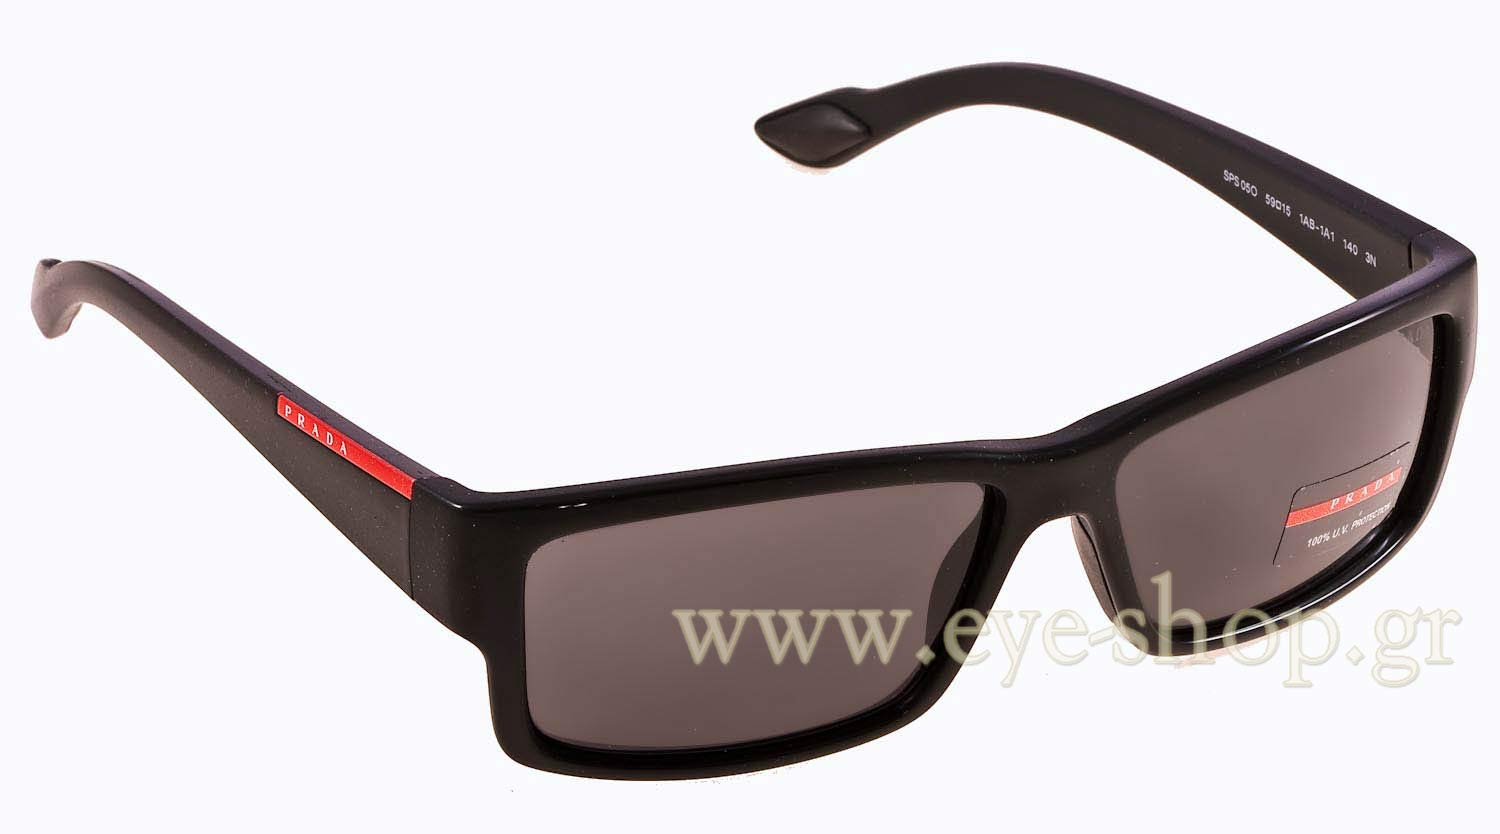 99afdb258cab 54IS Color: 5AV6S1 BROWN Sunglasses come with original Prada sport hard case,  cleaning cloth, and authenticity card.